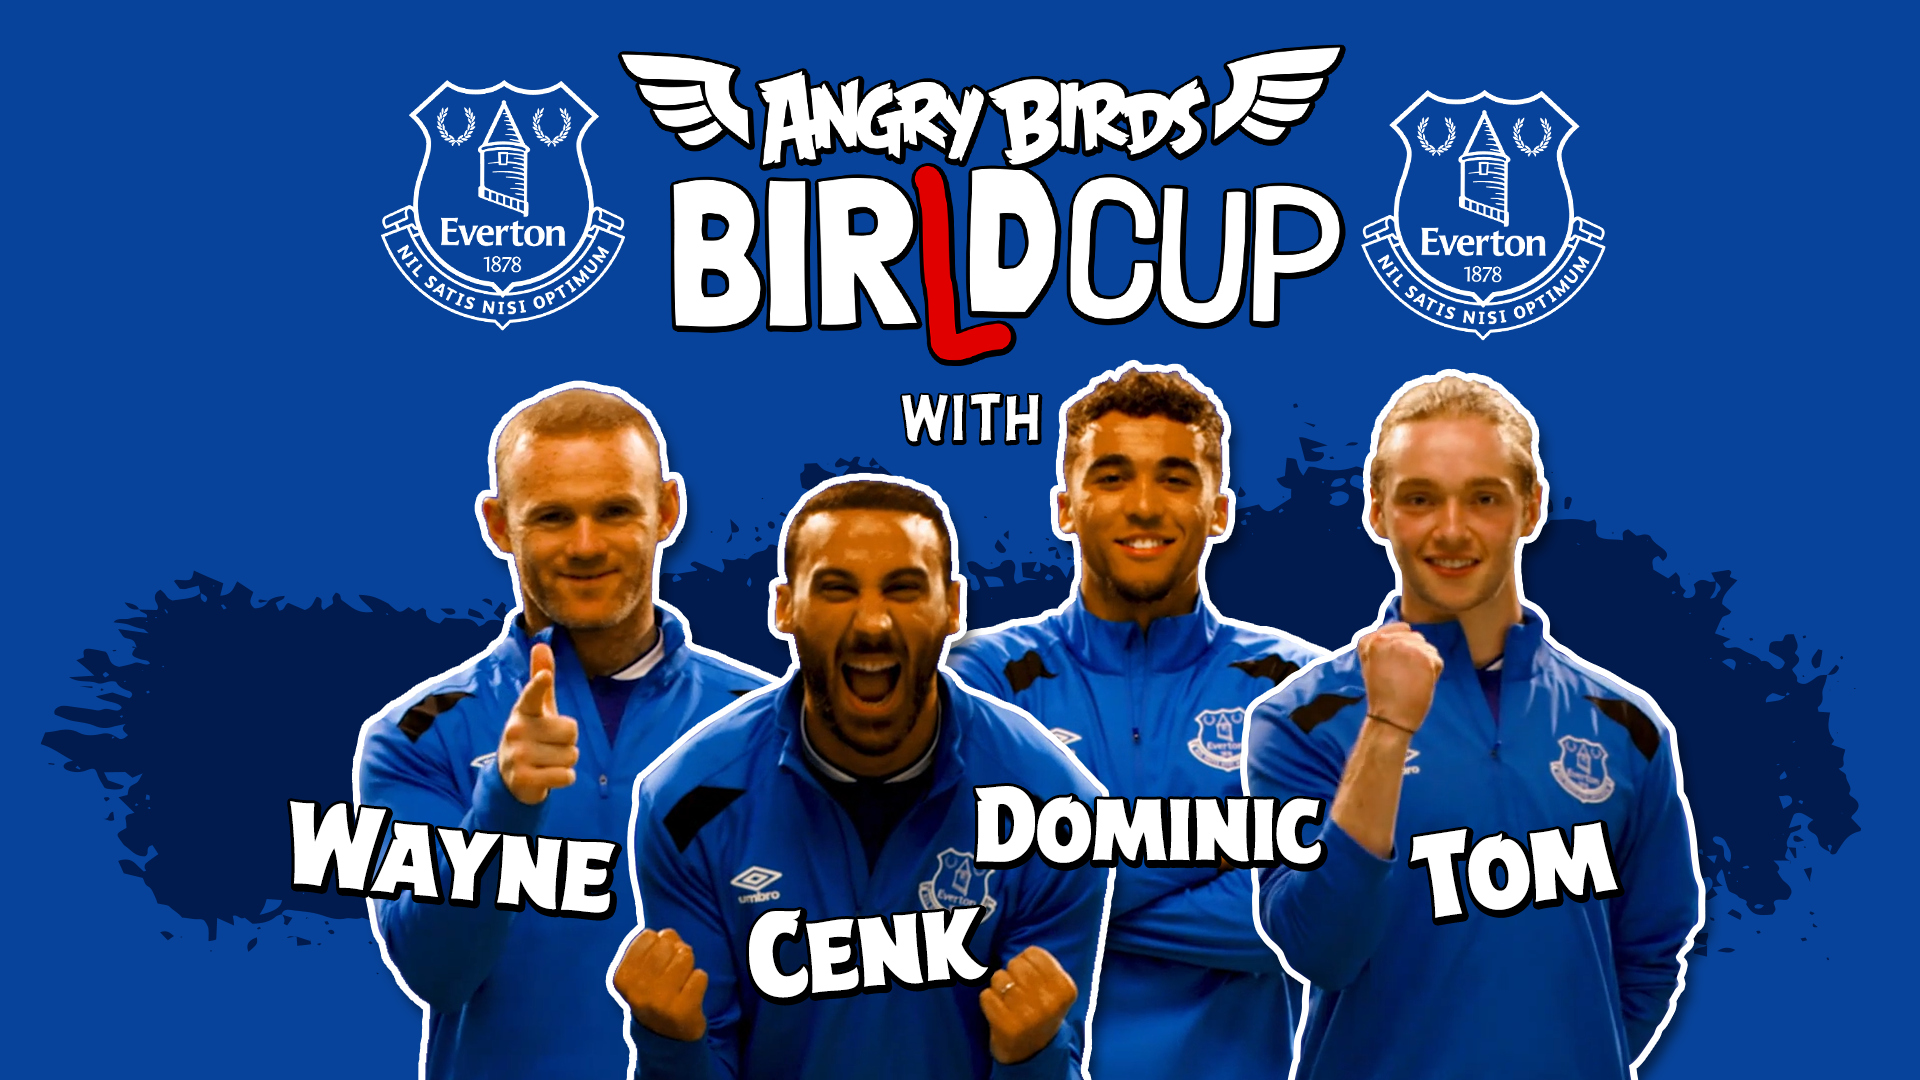 Forget the World Cup, this is the BIRLD Cup with the Angry Birds, AB Everton series key art players 1%, daily-dad, new-dad%